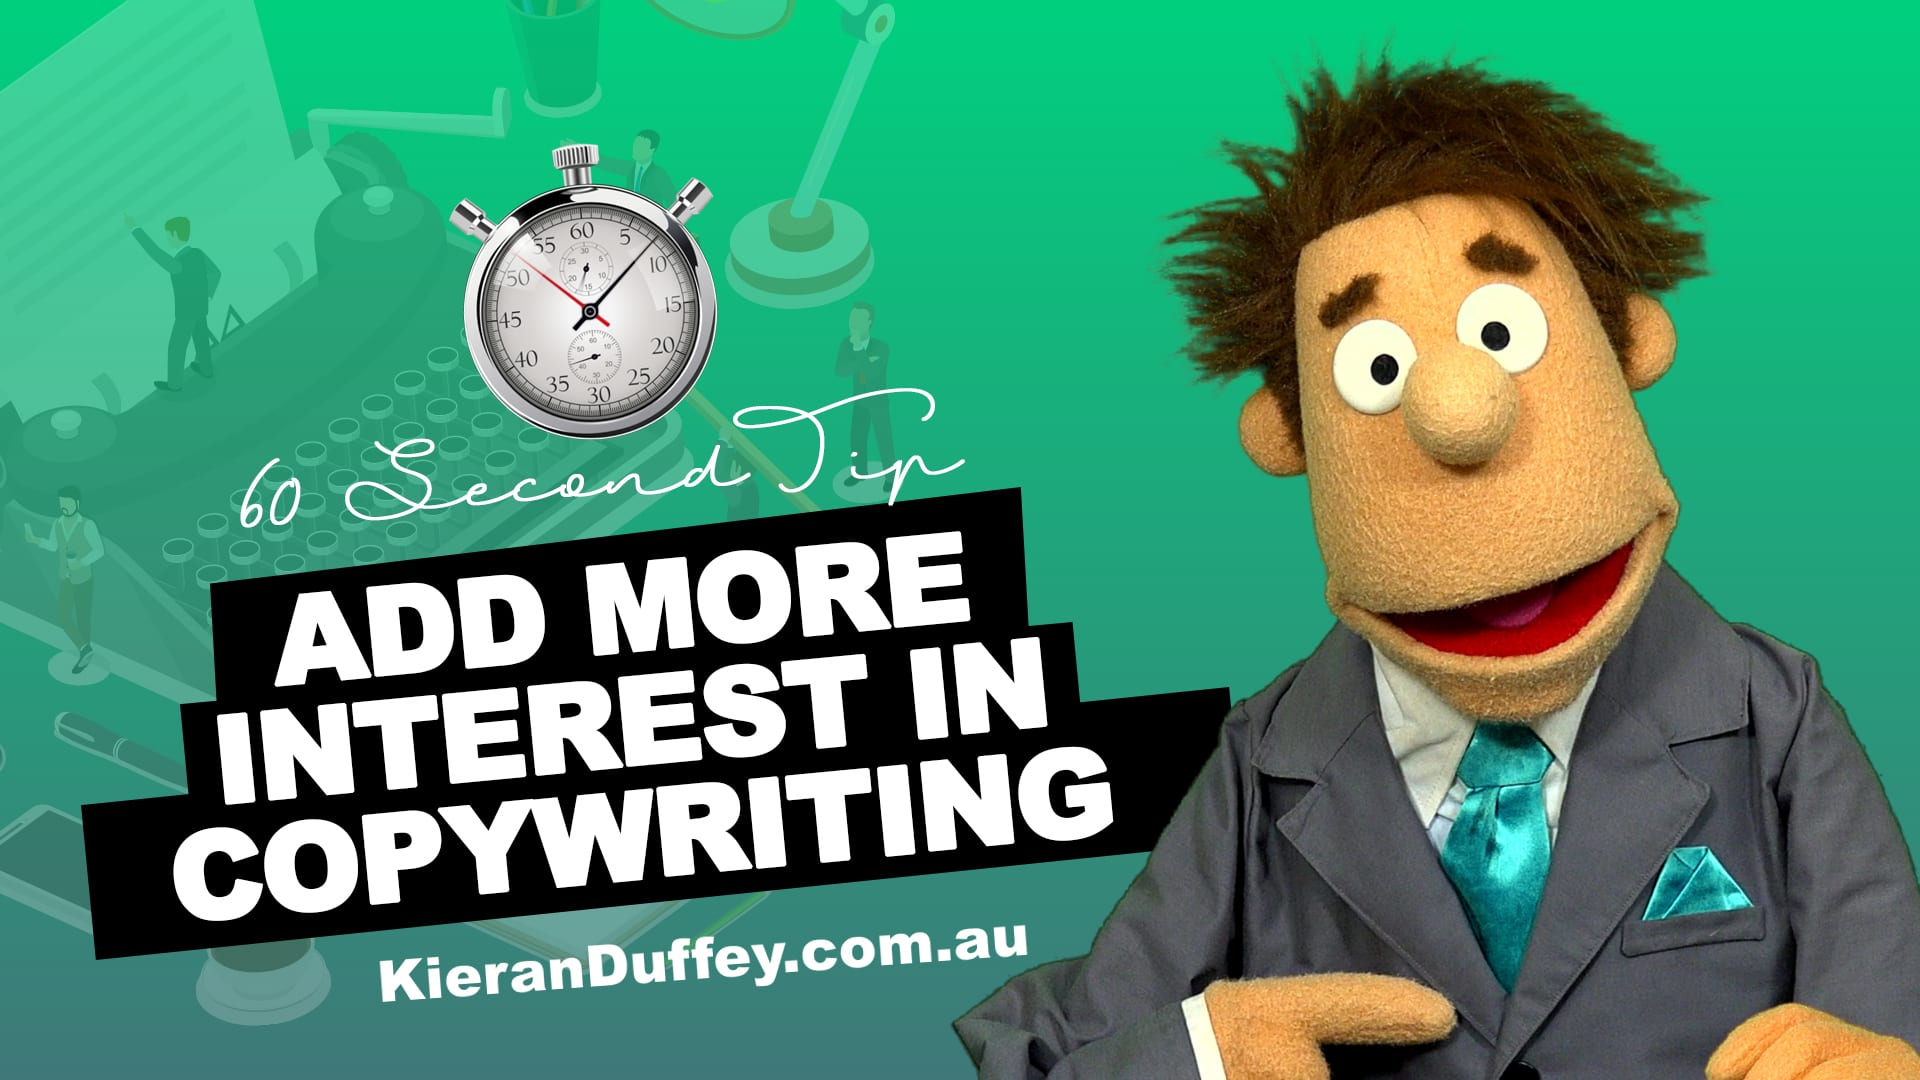 Video describing how to add more interest in copywriting